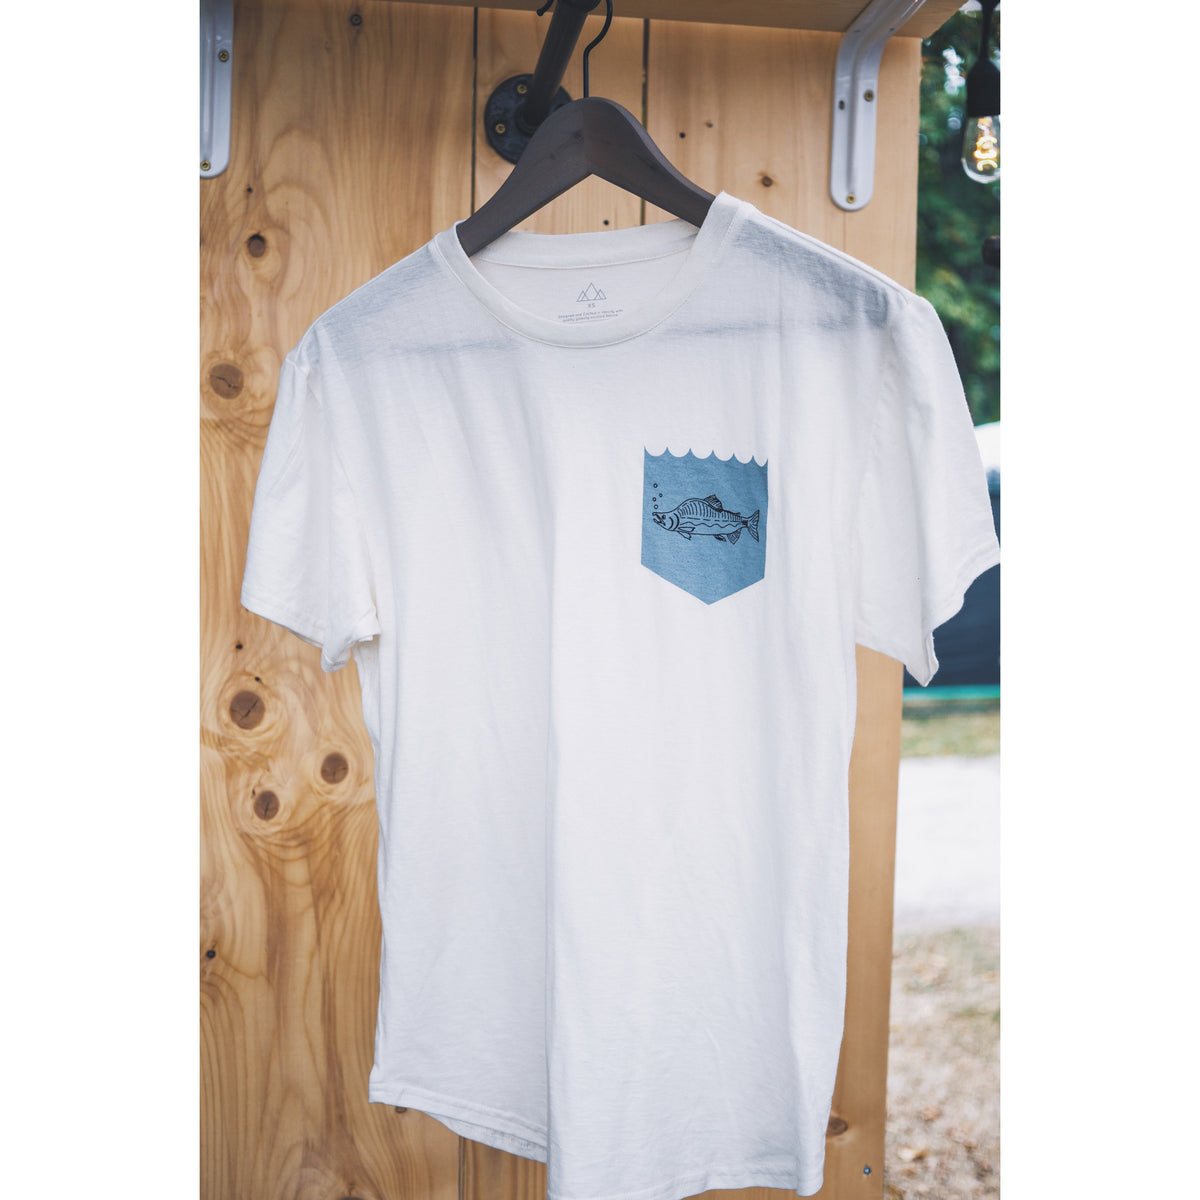 hemp-organic-cotton-tee-vancouver-salmon-mocket